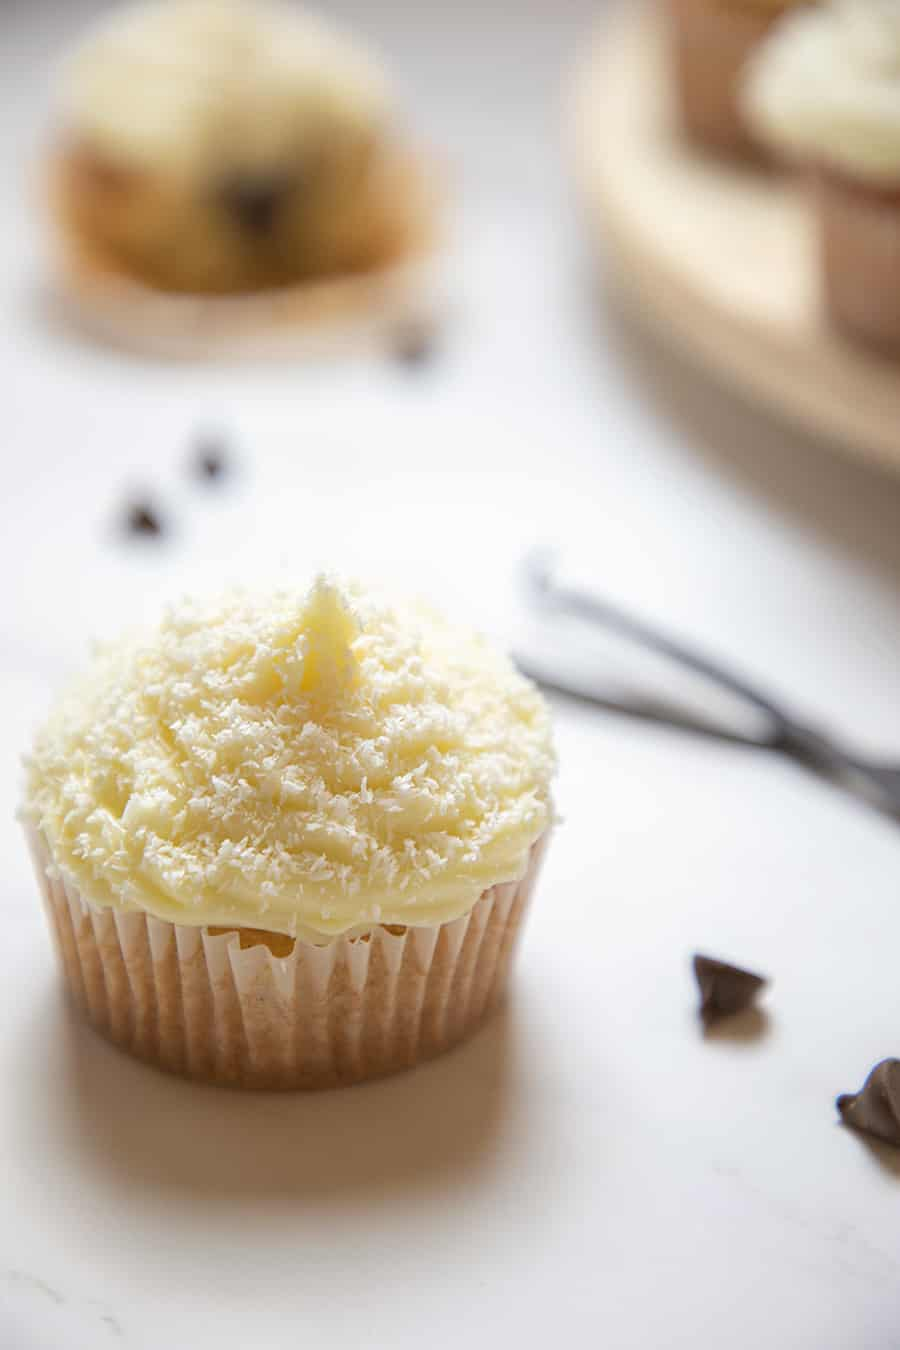 These gluten-free coconut cupcakes are filled with chocolate ganache and topped with cream cheese frosting. The flavor of the coconut is highlighted by the chocolate and cream cheese frosting.